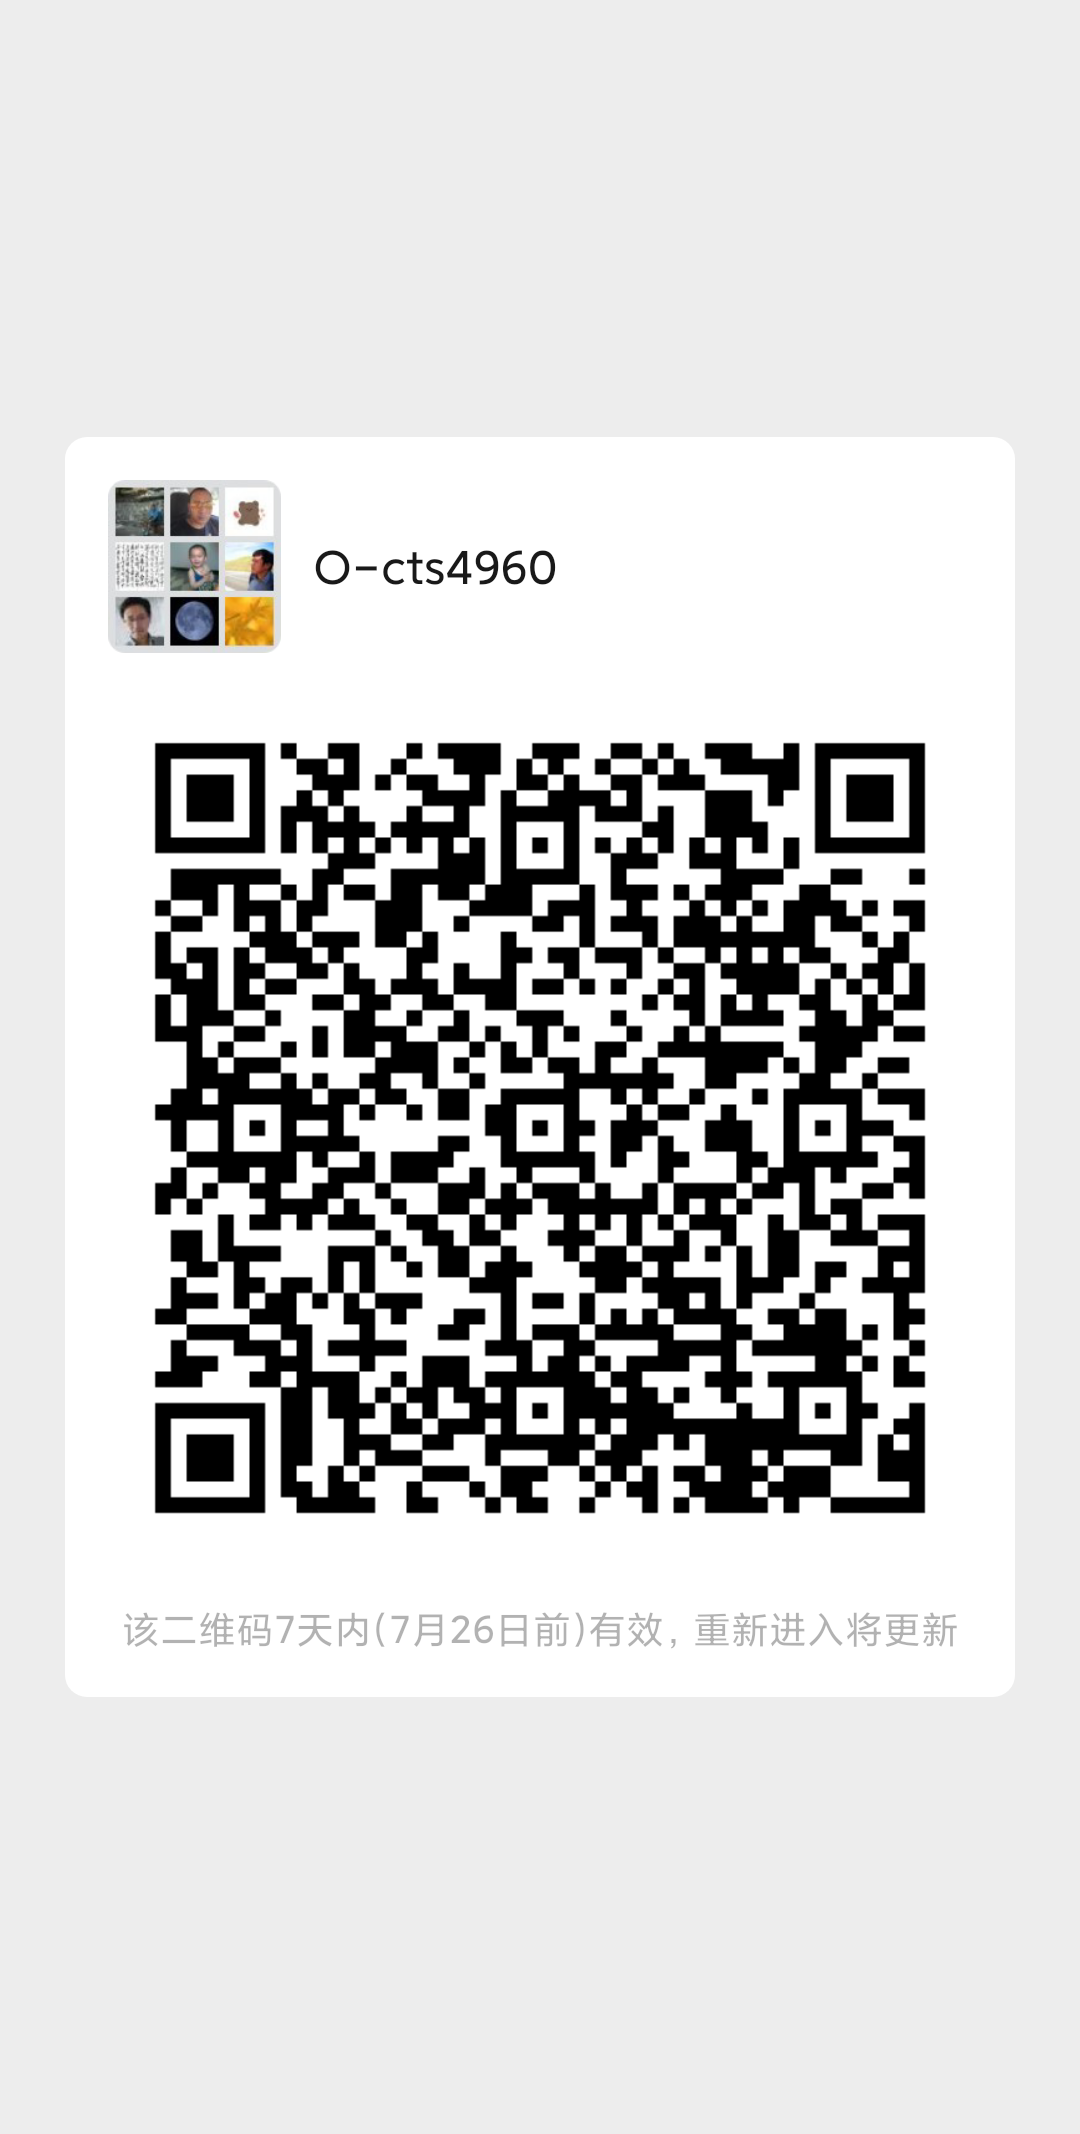 mmqrcode1595131634972.png